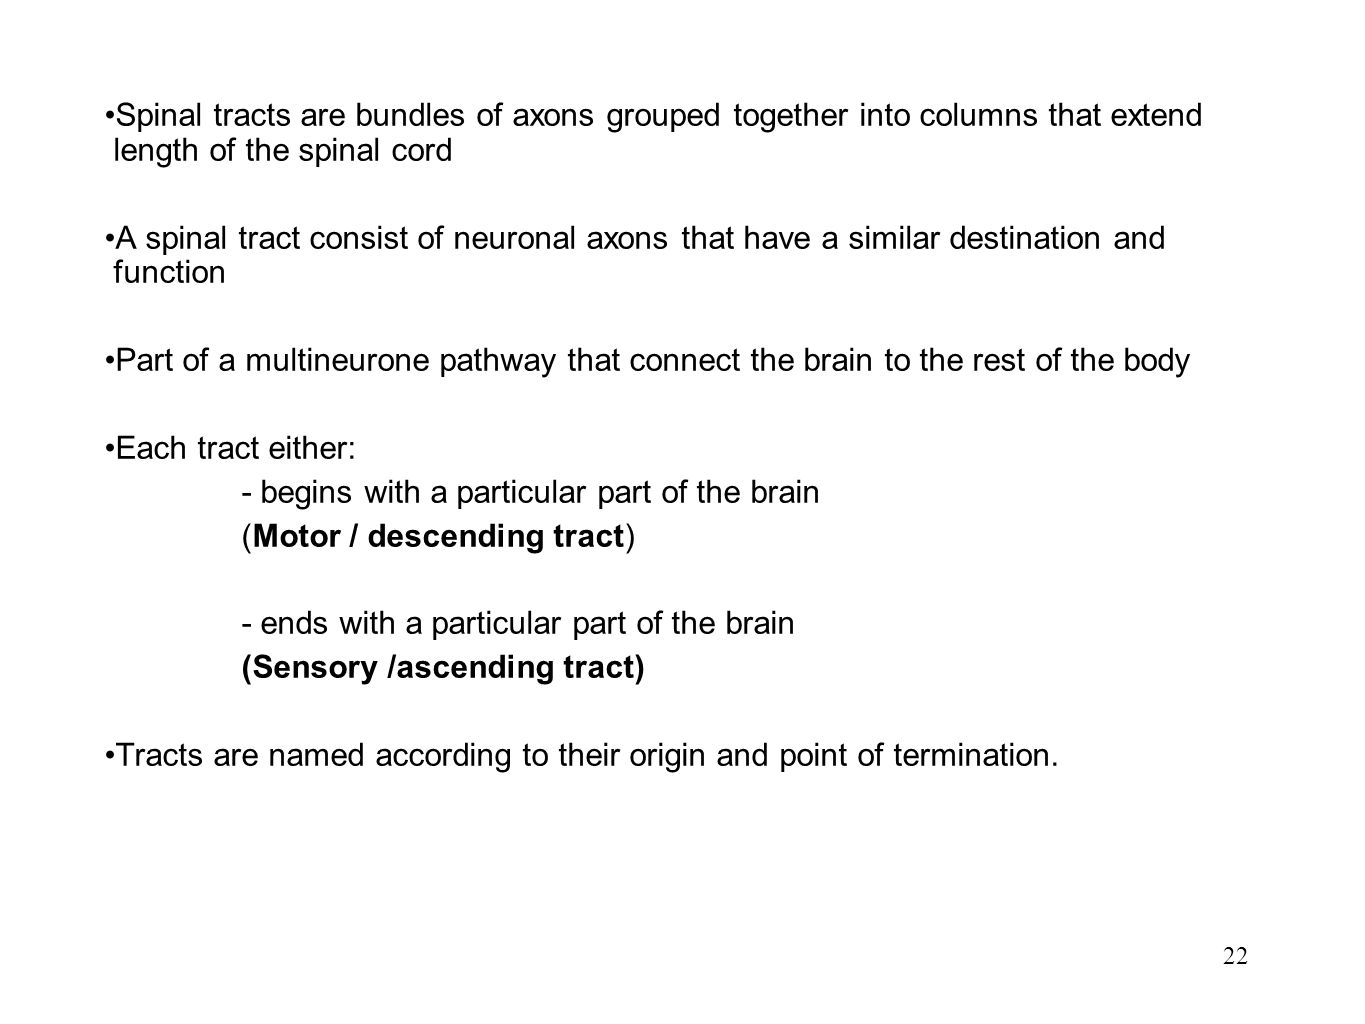 - begins with a particular part of the brain